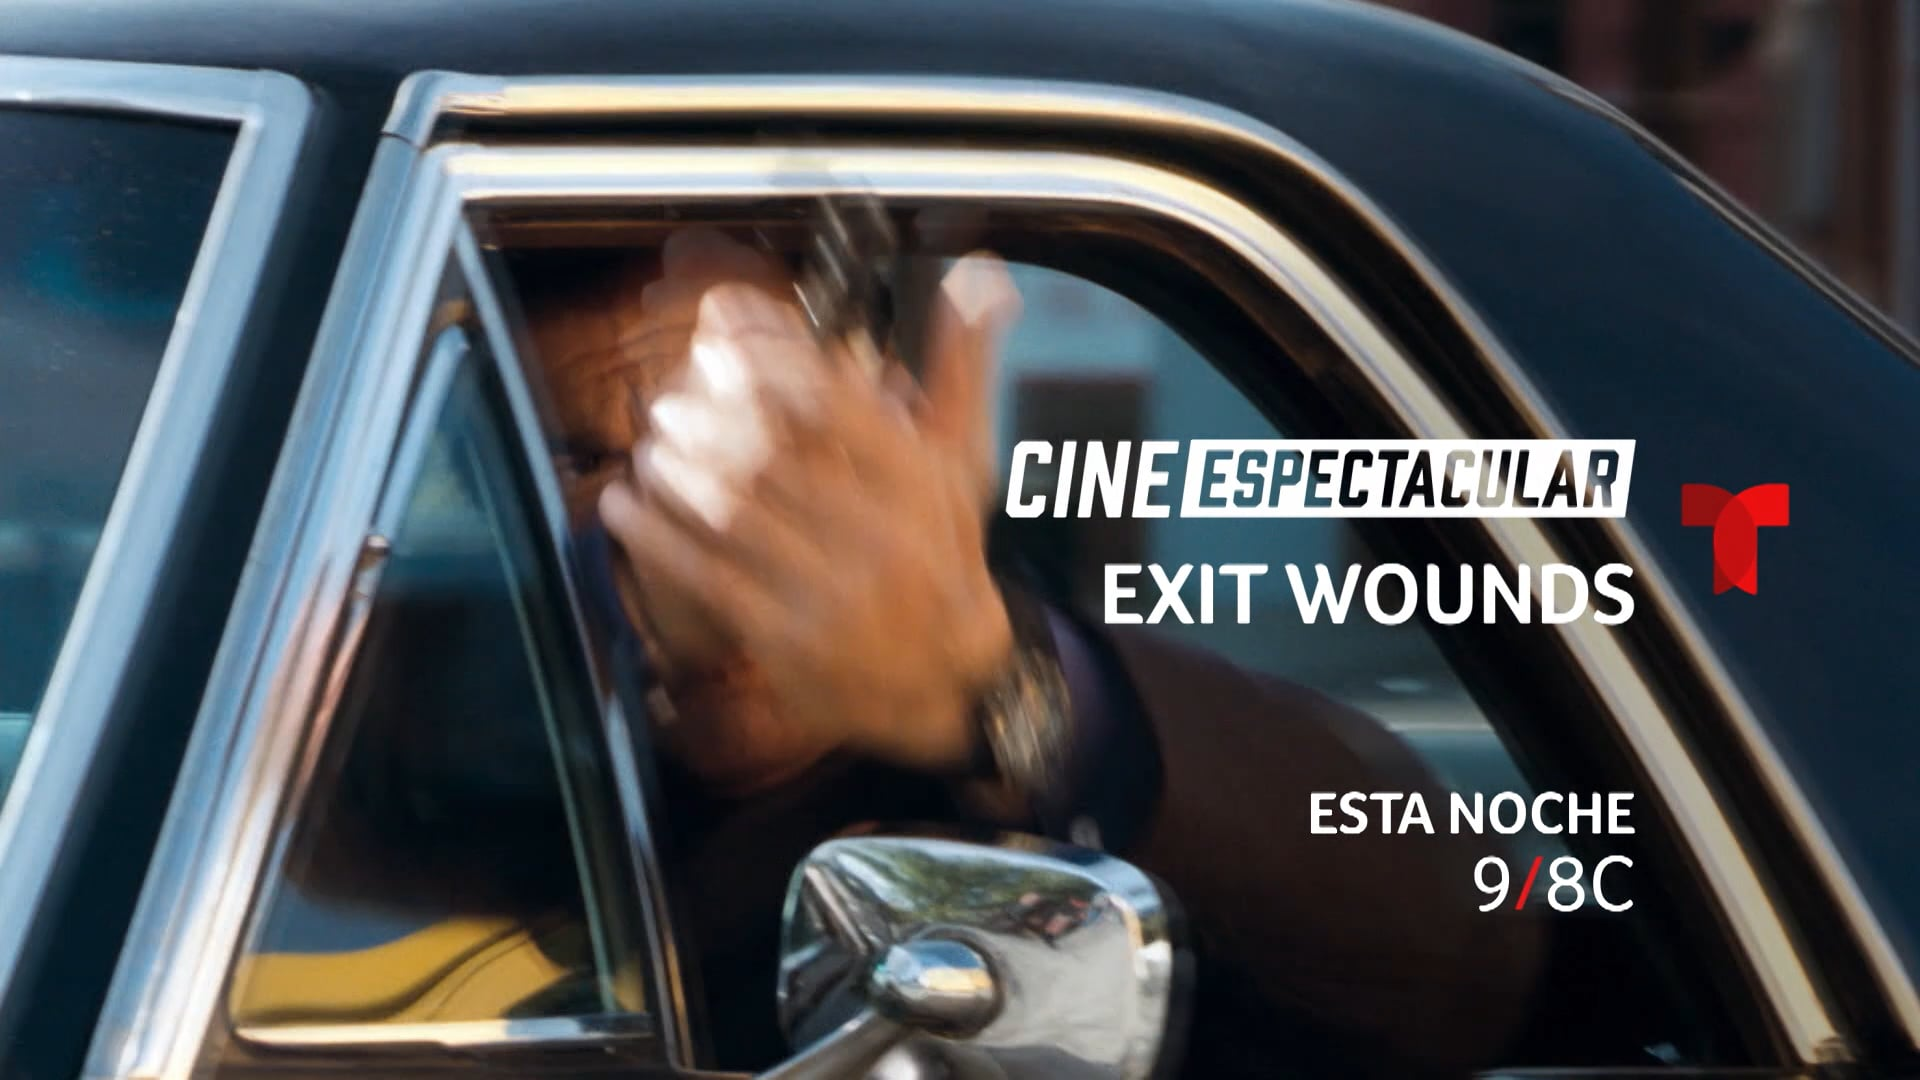 CINE ESPECTACULAR: EXIT WOUNDS – TUNE-IN